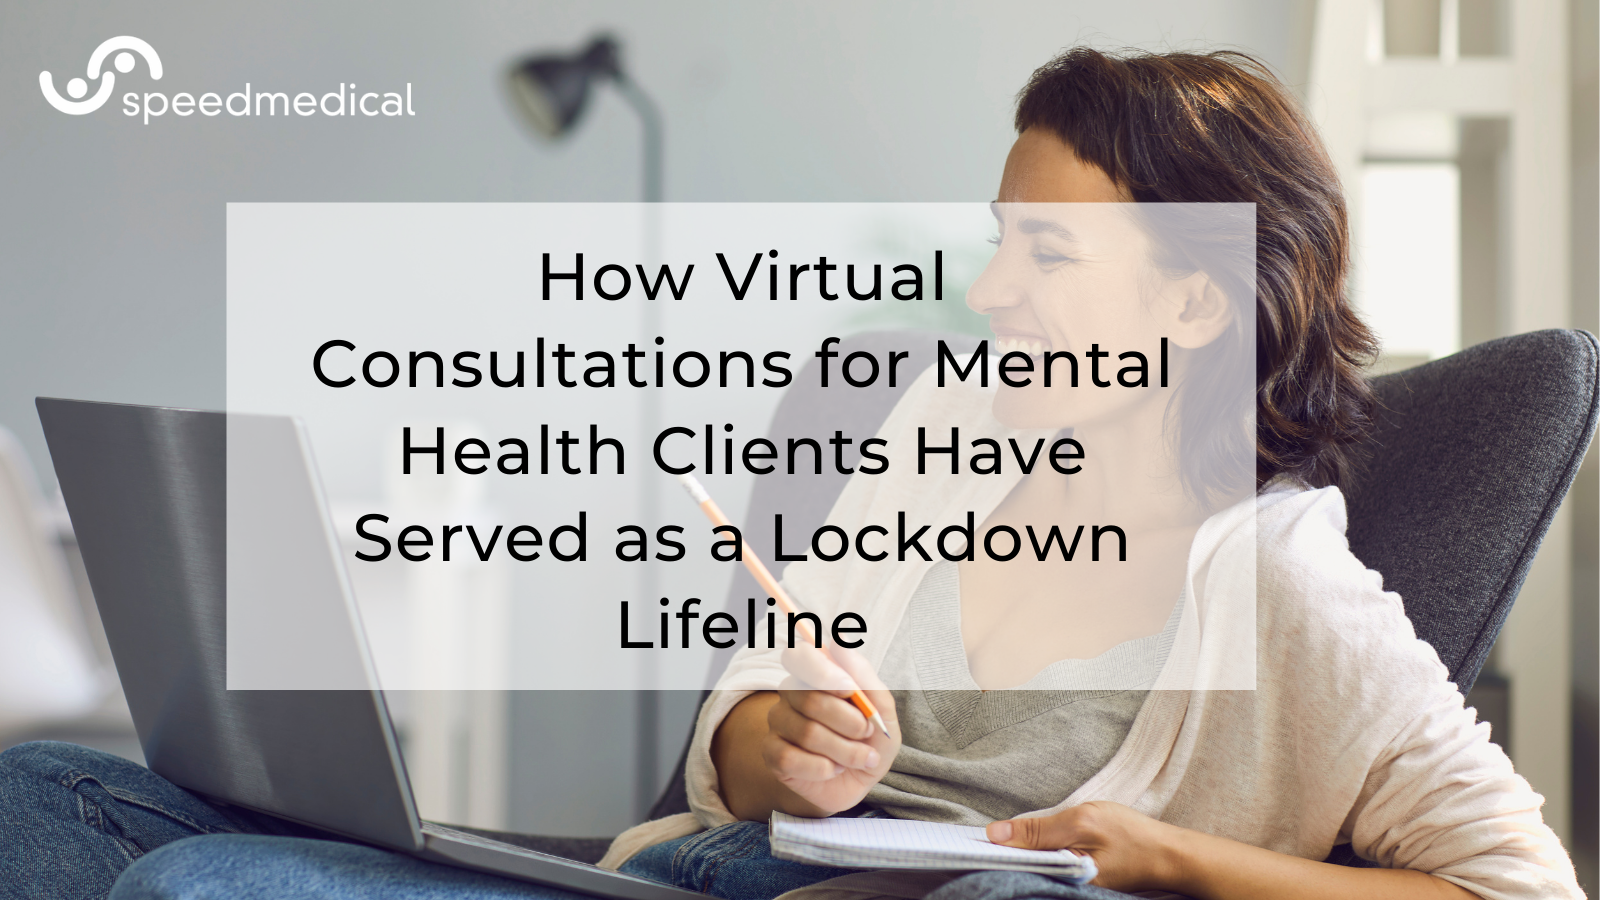 How Virtual Consultations for Mental Health Clients Have Served as a Lockdown Lifeline